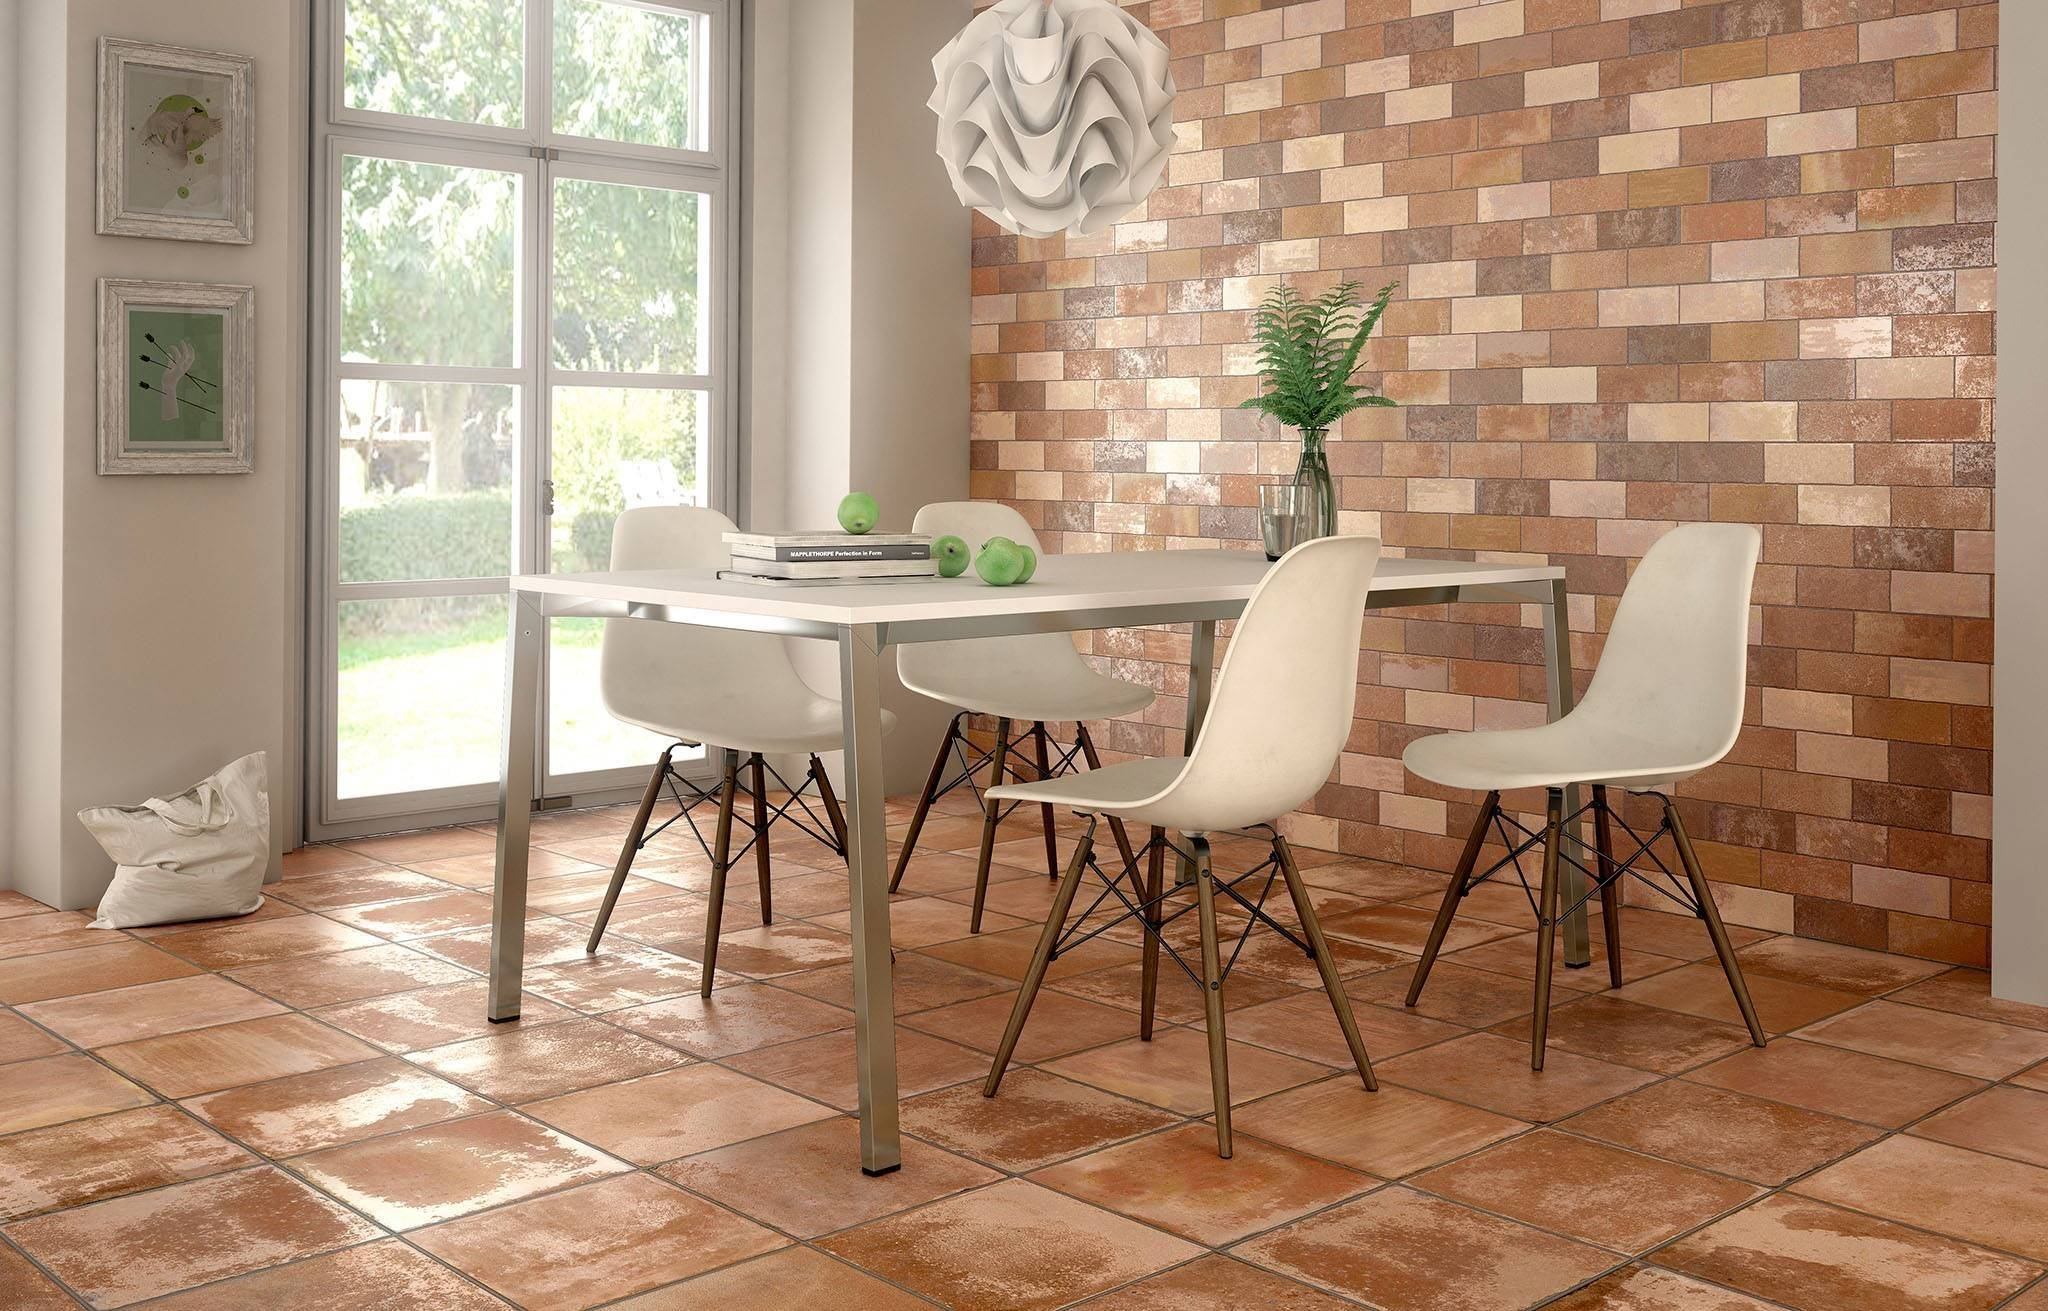 Gres porcelanico rustico interior perfect gres for Pavimento rustico interior